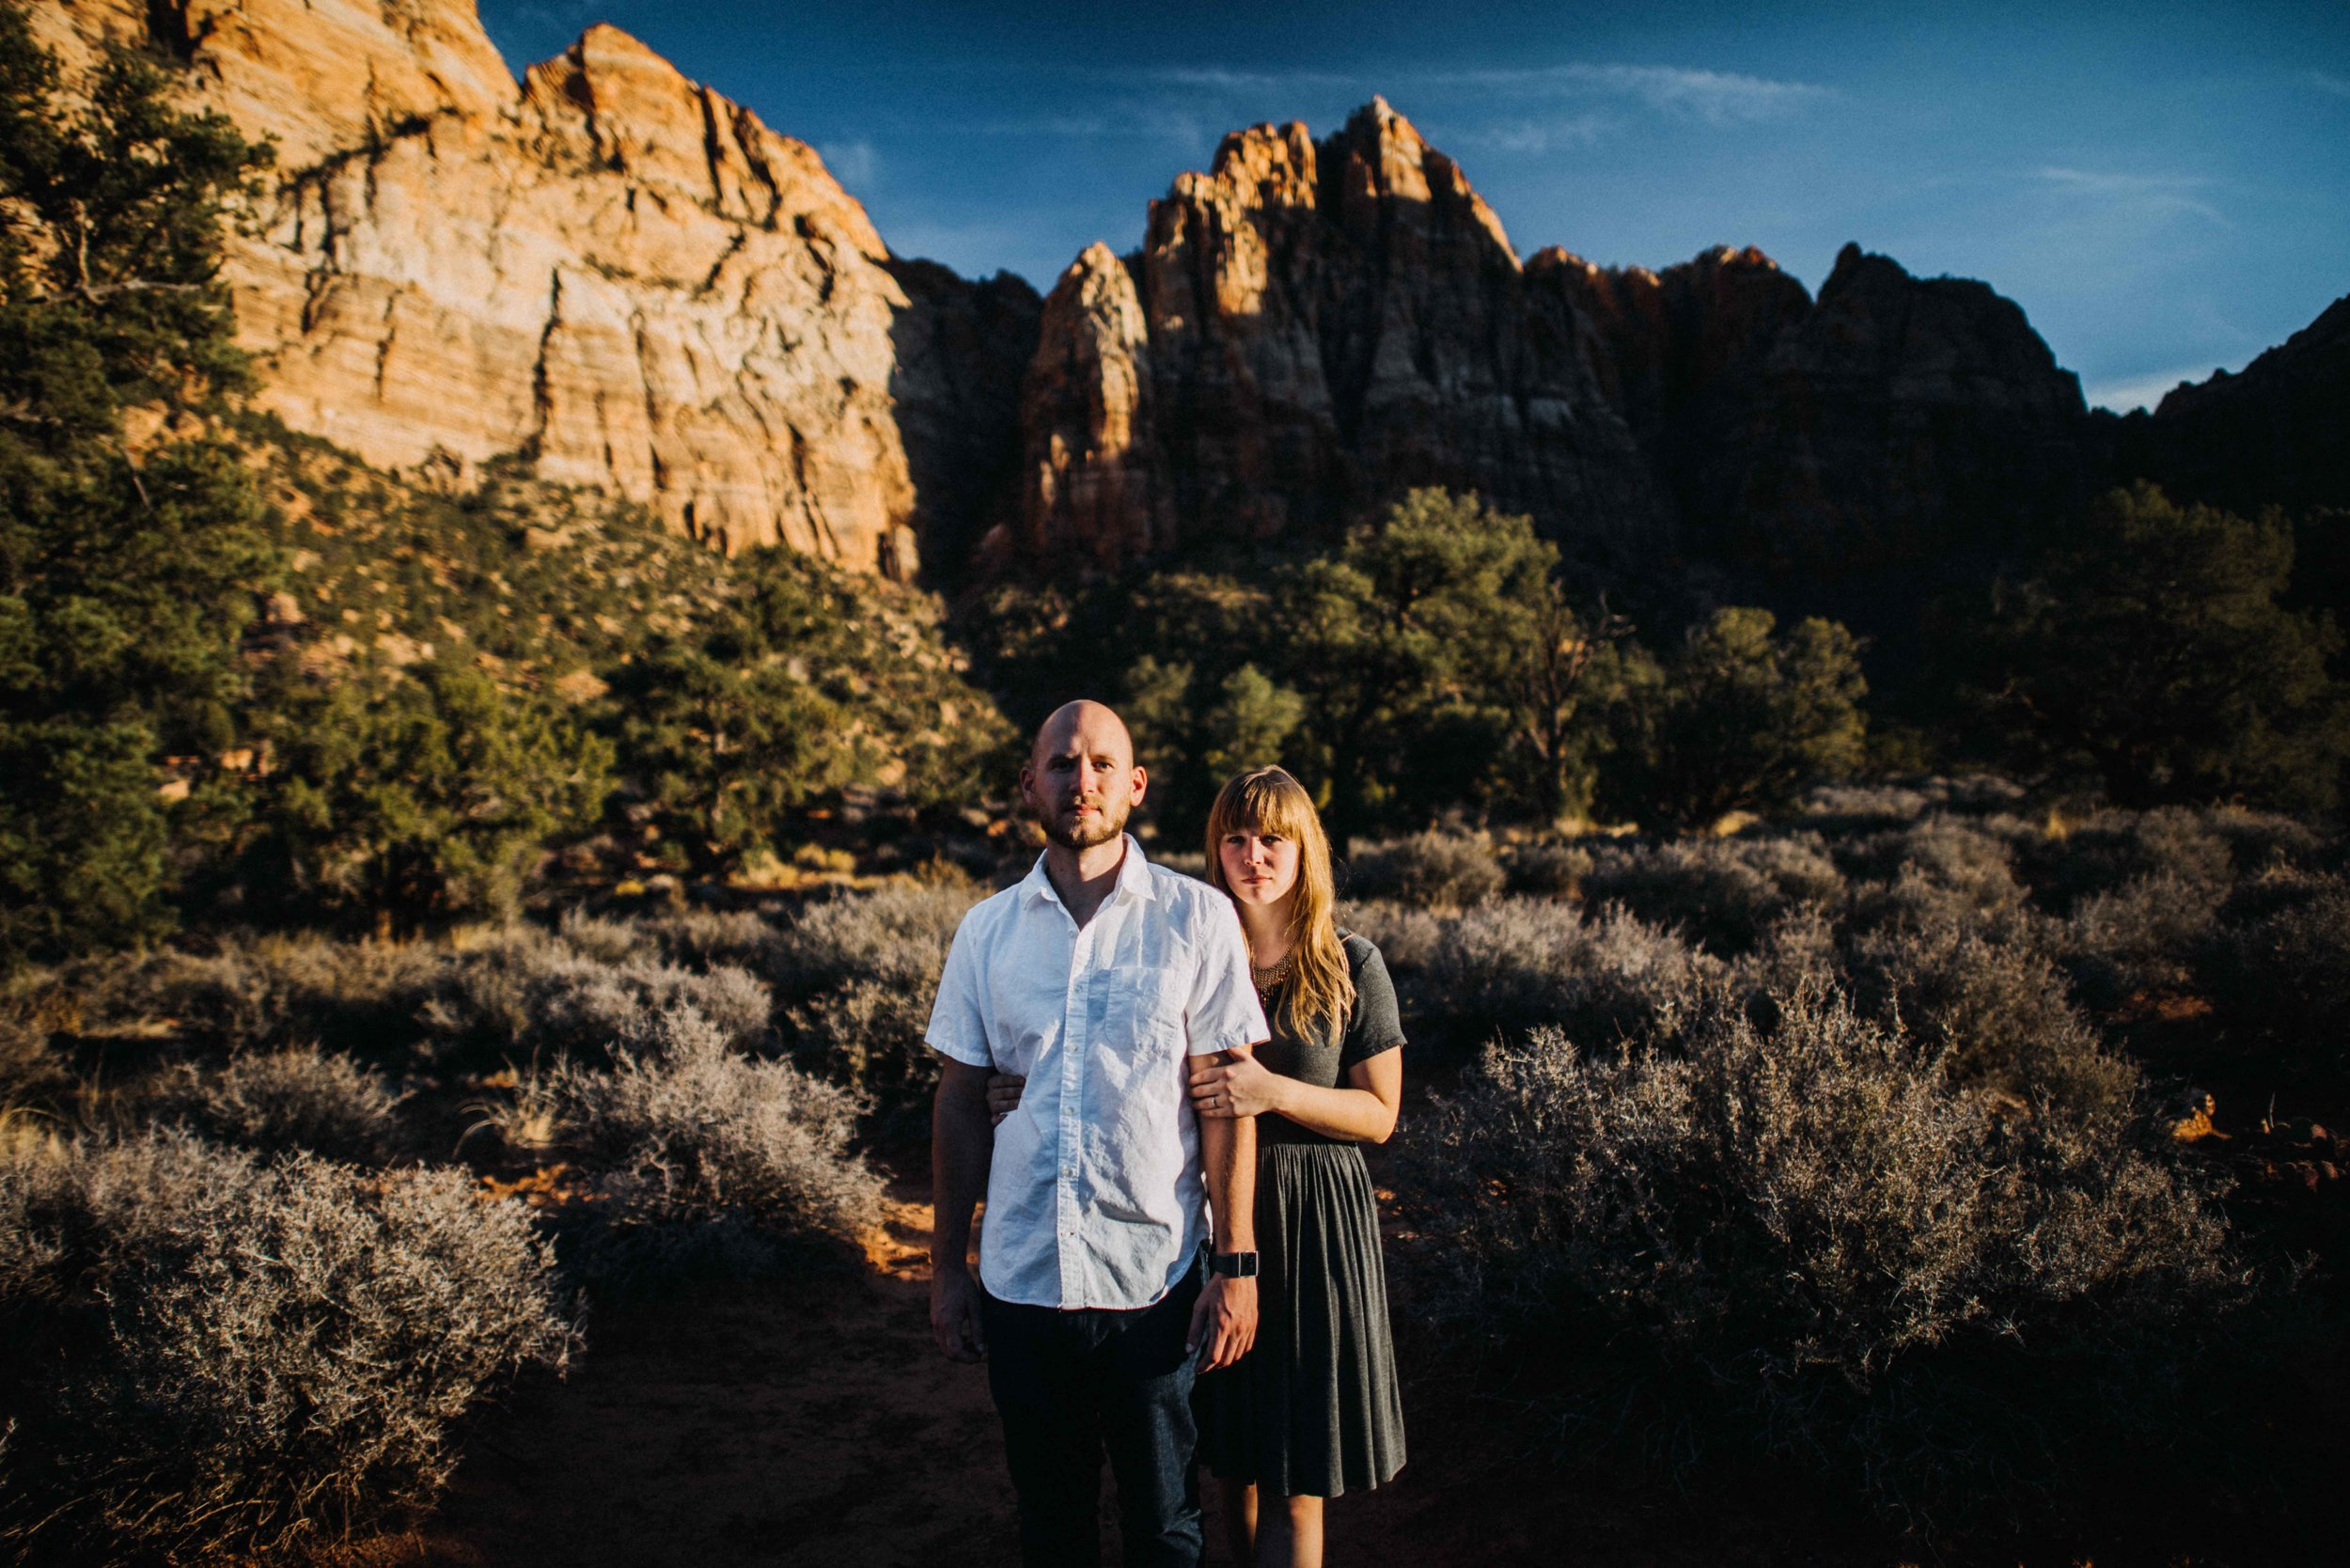 zion_national_park_utah_wedding_photography_engagement-3084.JPG